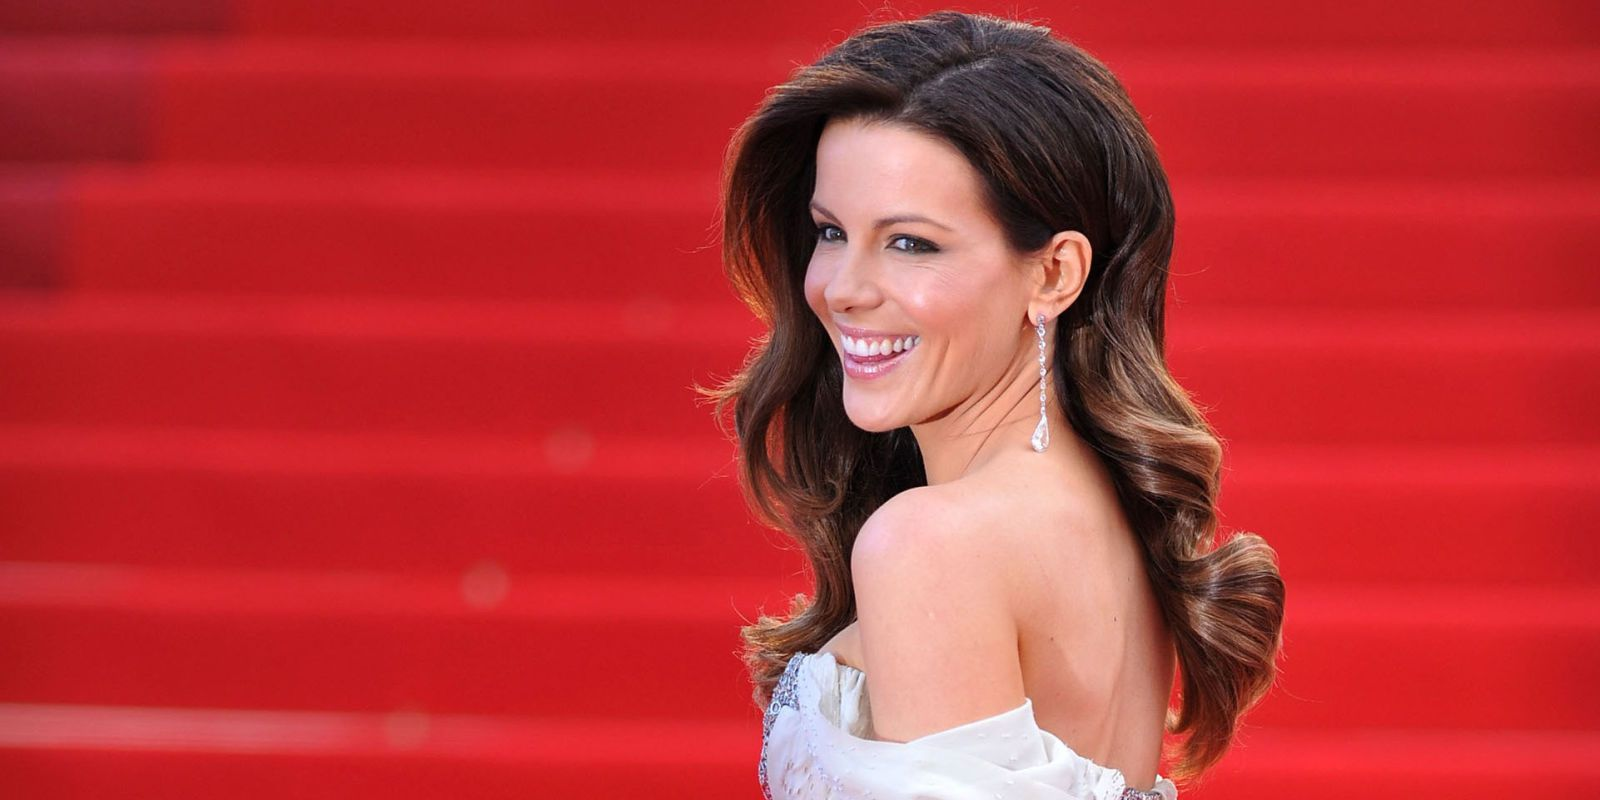 Kate Beckinsale Just Had The Best Thing To Say About Her Unconventional Family With Michael Sheen